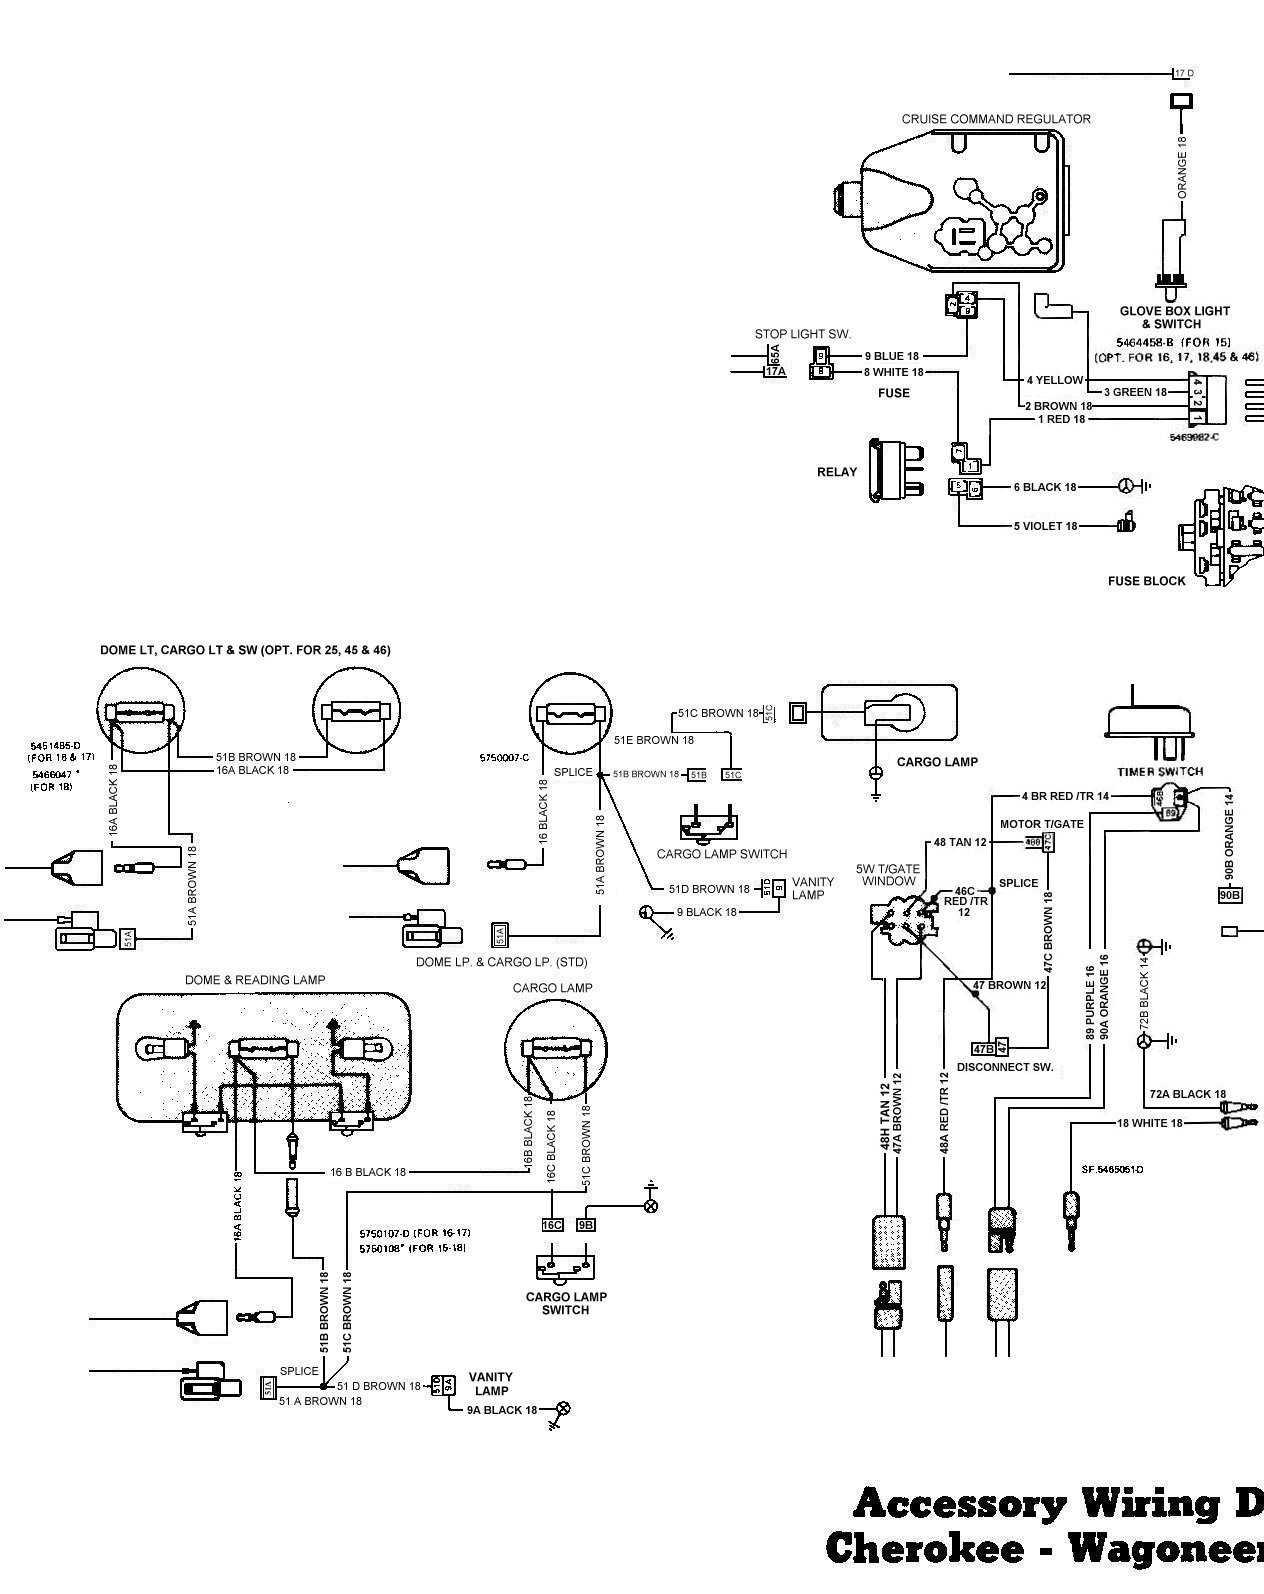 wiring accessories page 1